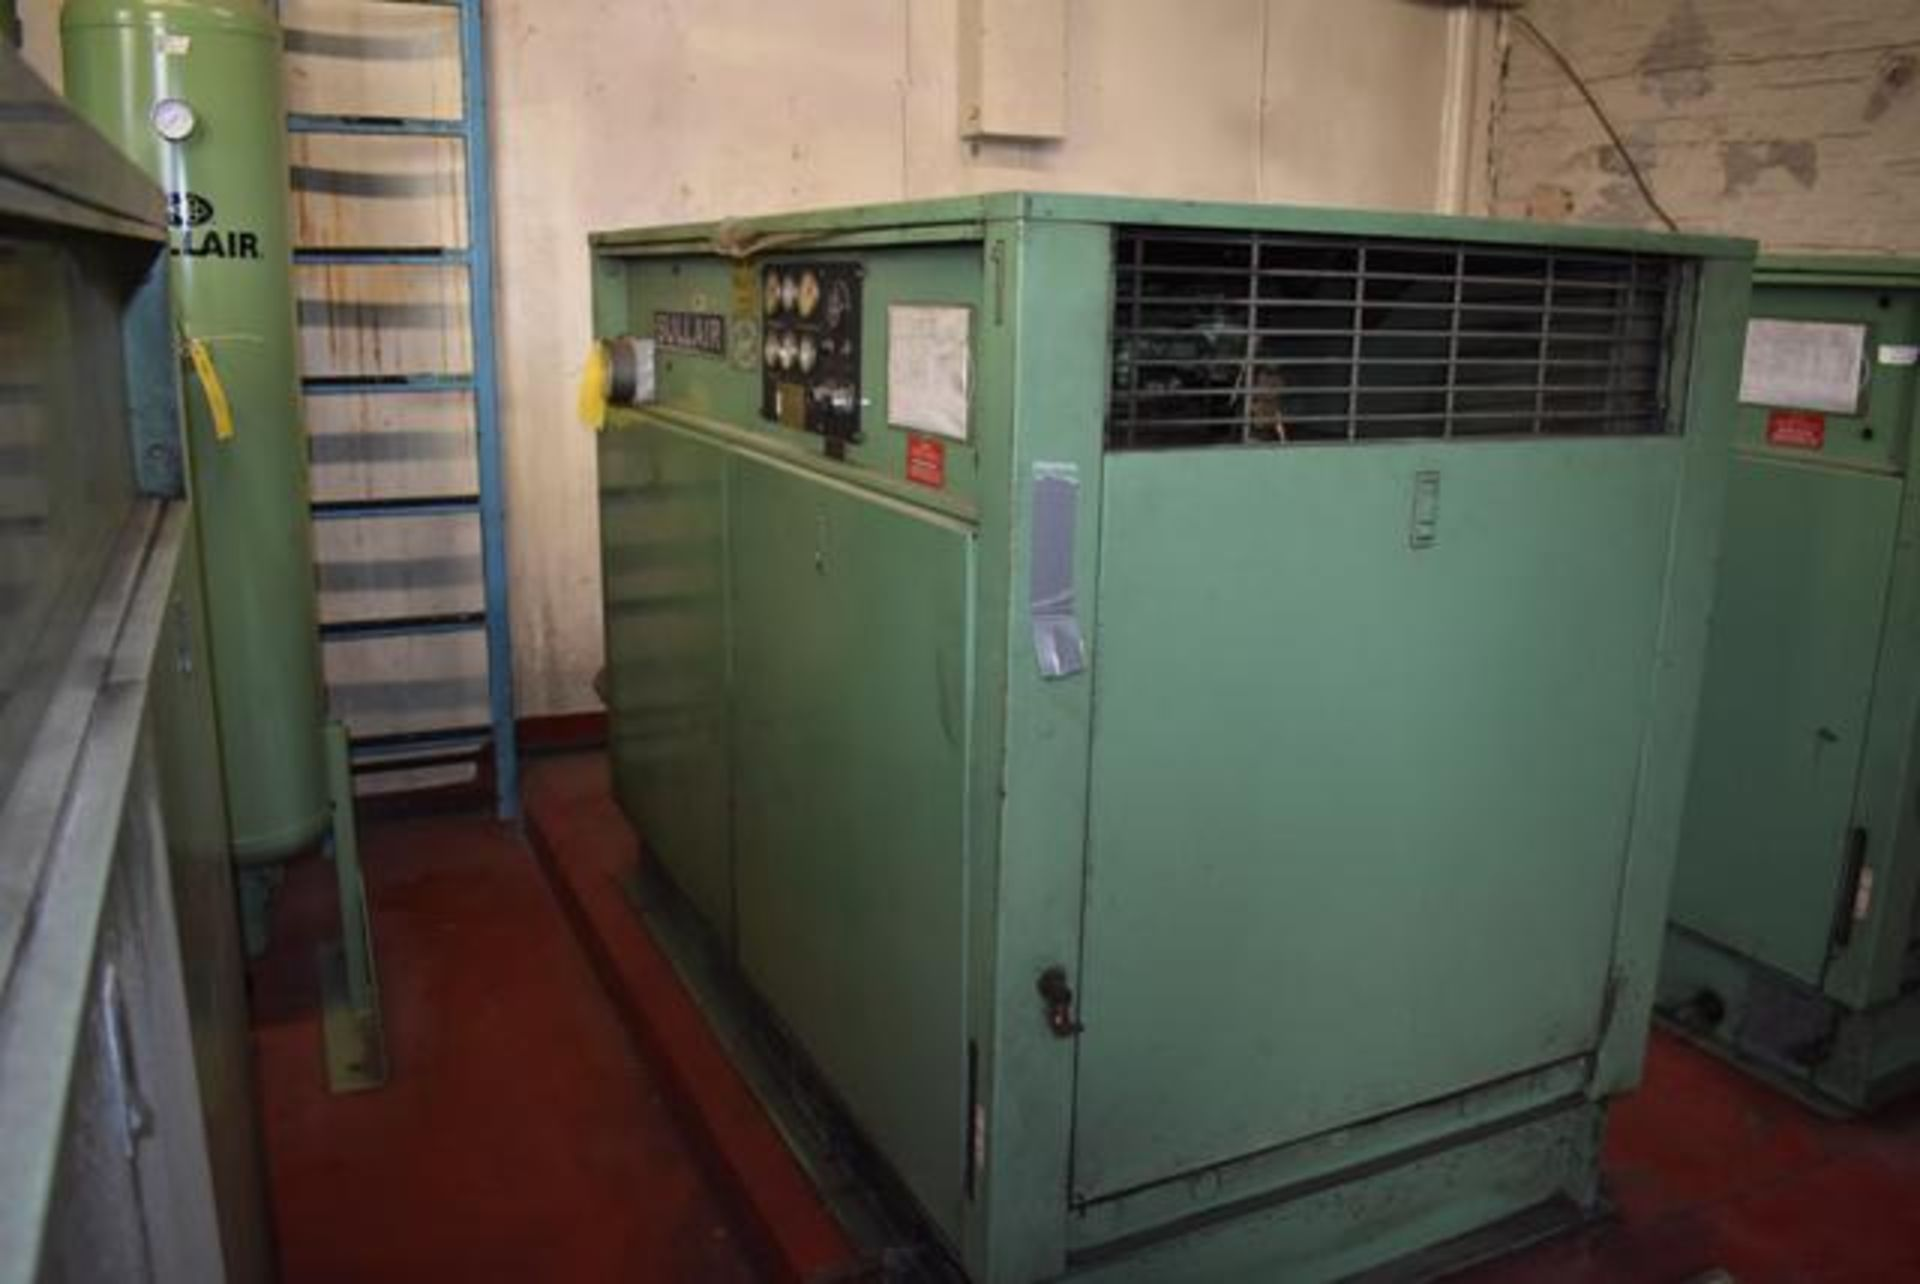 Lot 340 - Sullair Model #12B-40H Rotary Screw Air Compressor, 40 HP Motor, 14051 Hrs. Indicated